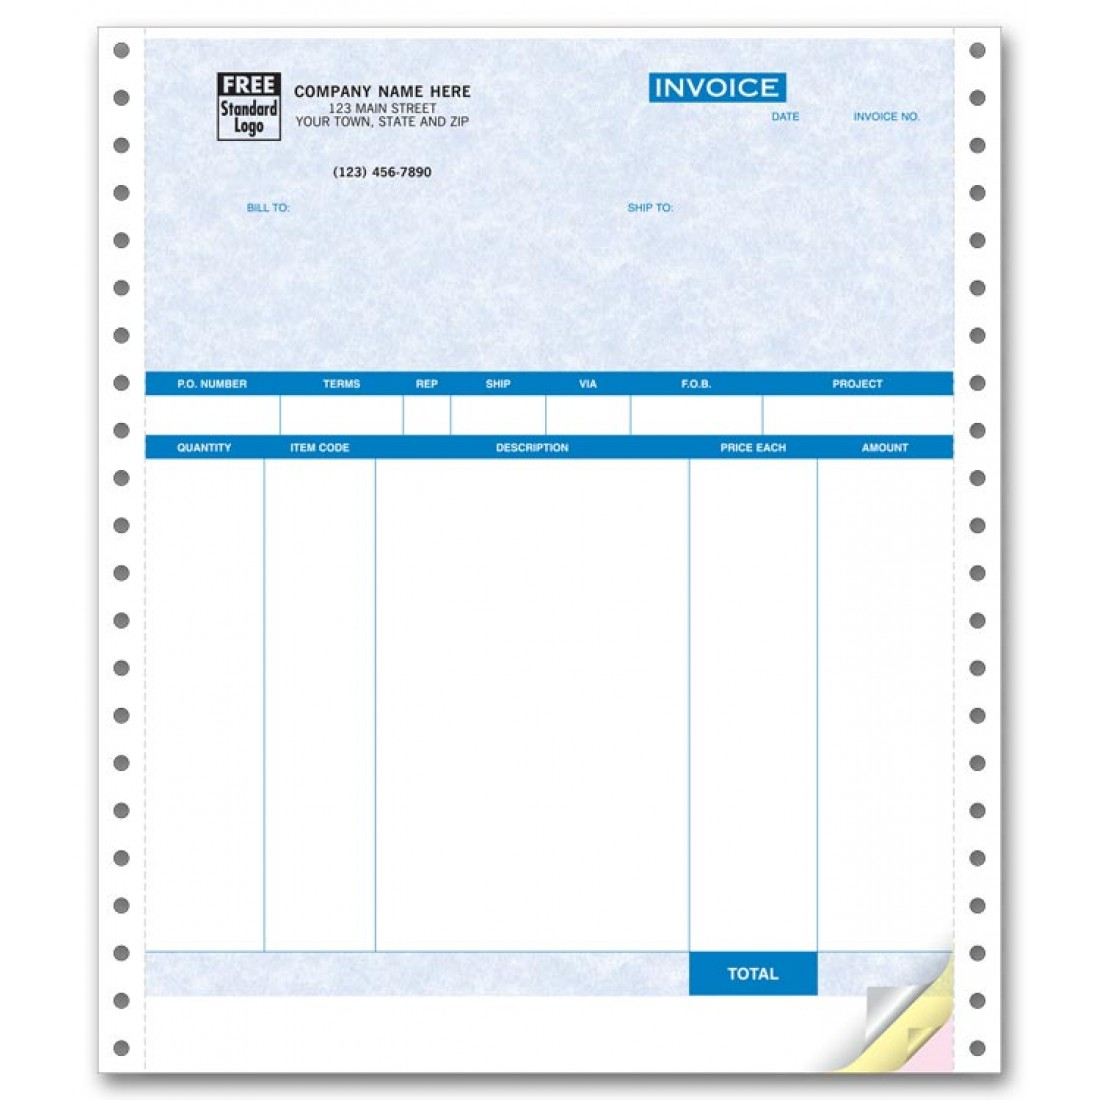 Continuous Product Invoice - Parchment compatible with QuickBooks